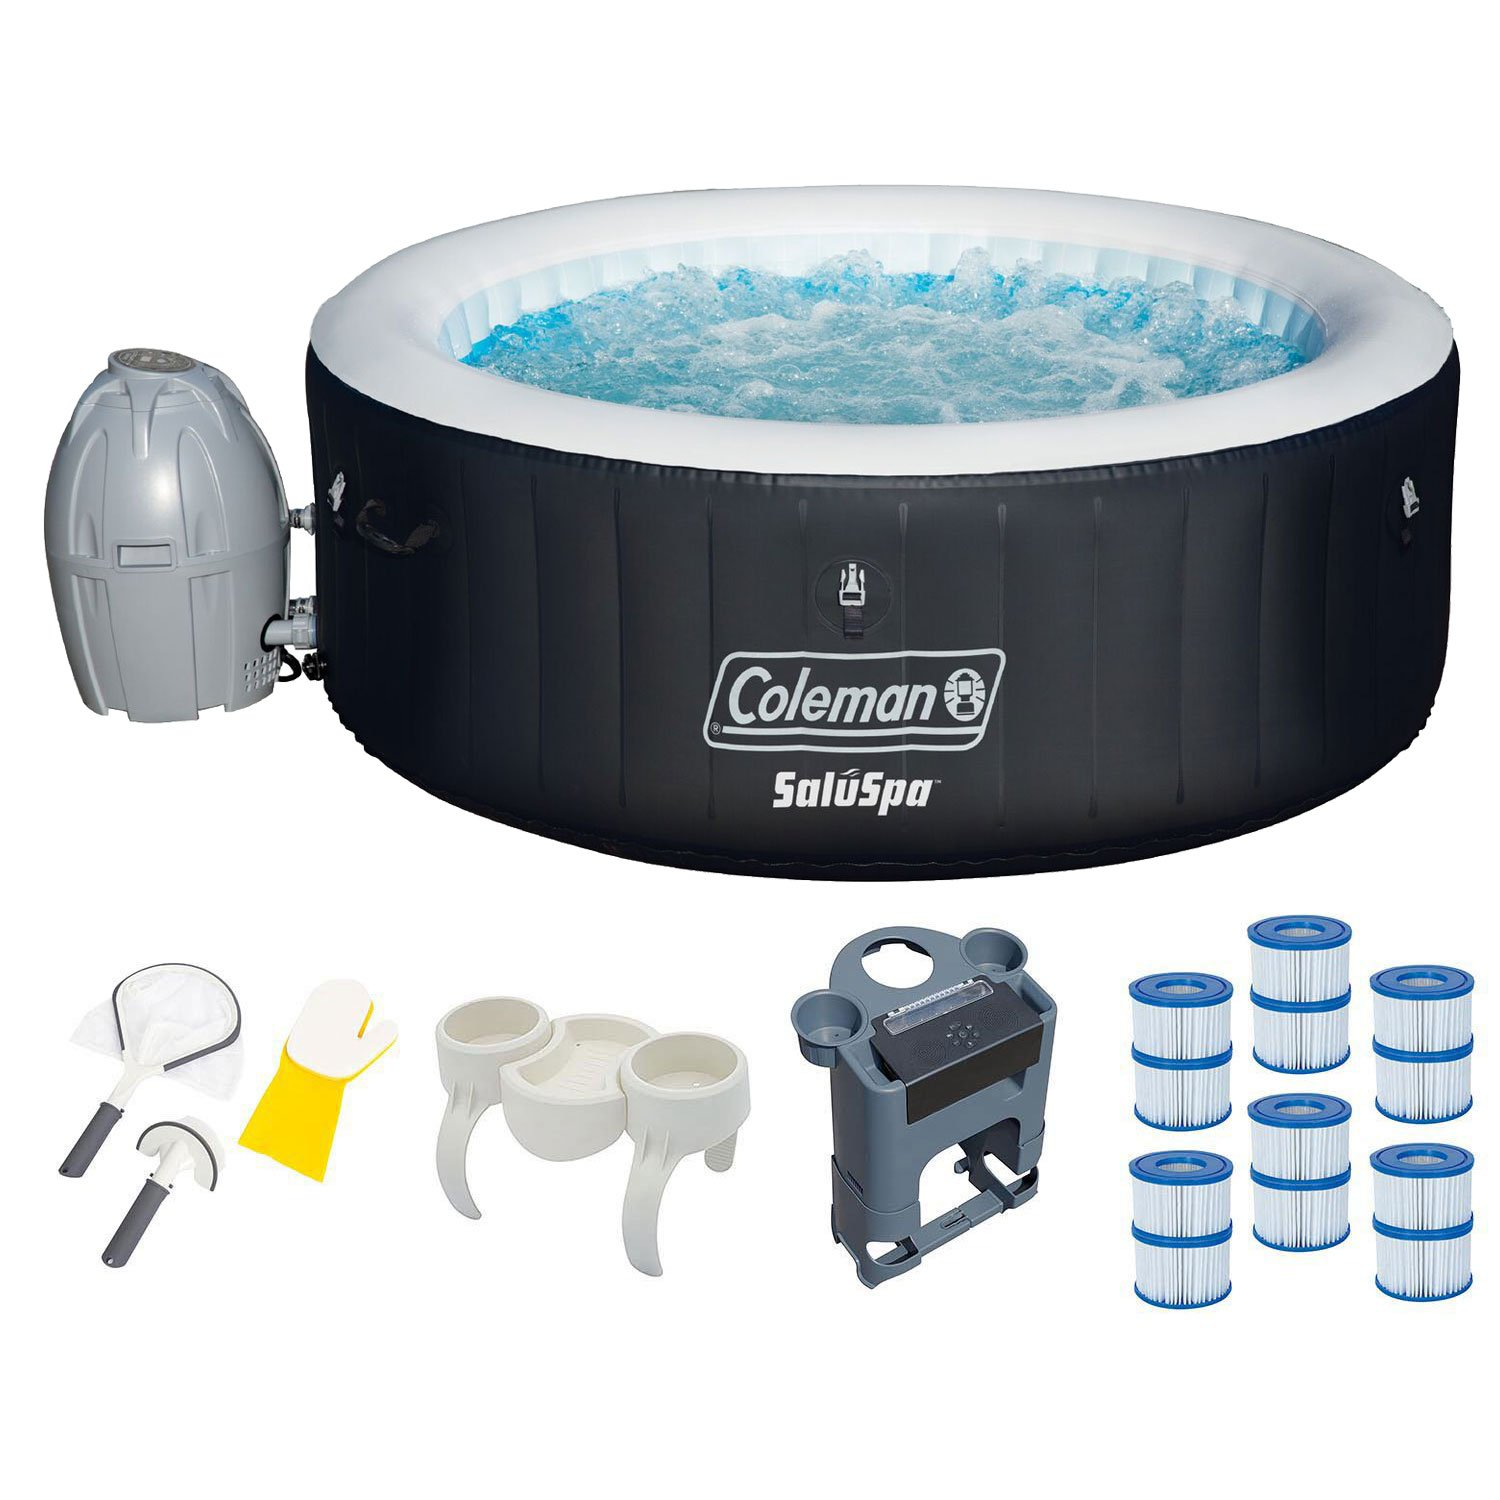 Amazon.com: Coleman SaluSpa 4-Person Inflatable Spa Hot Tub with ...